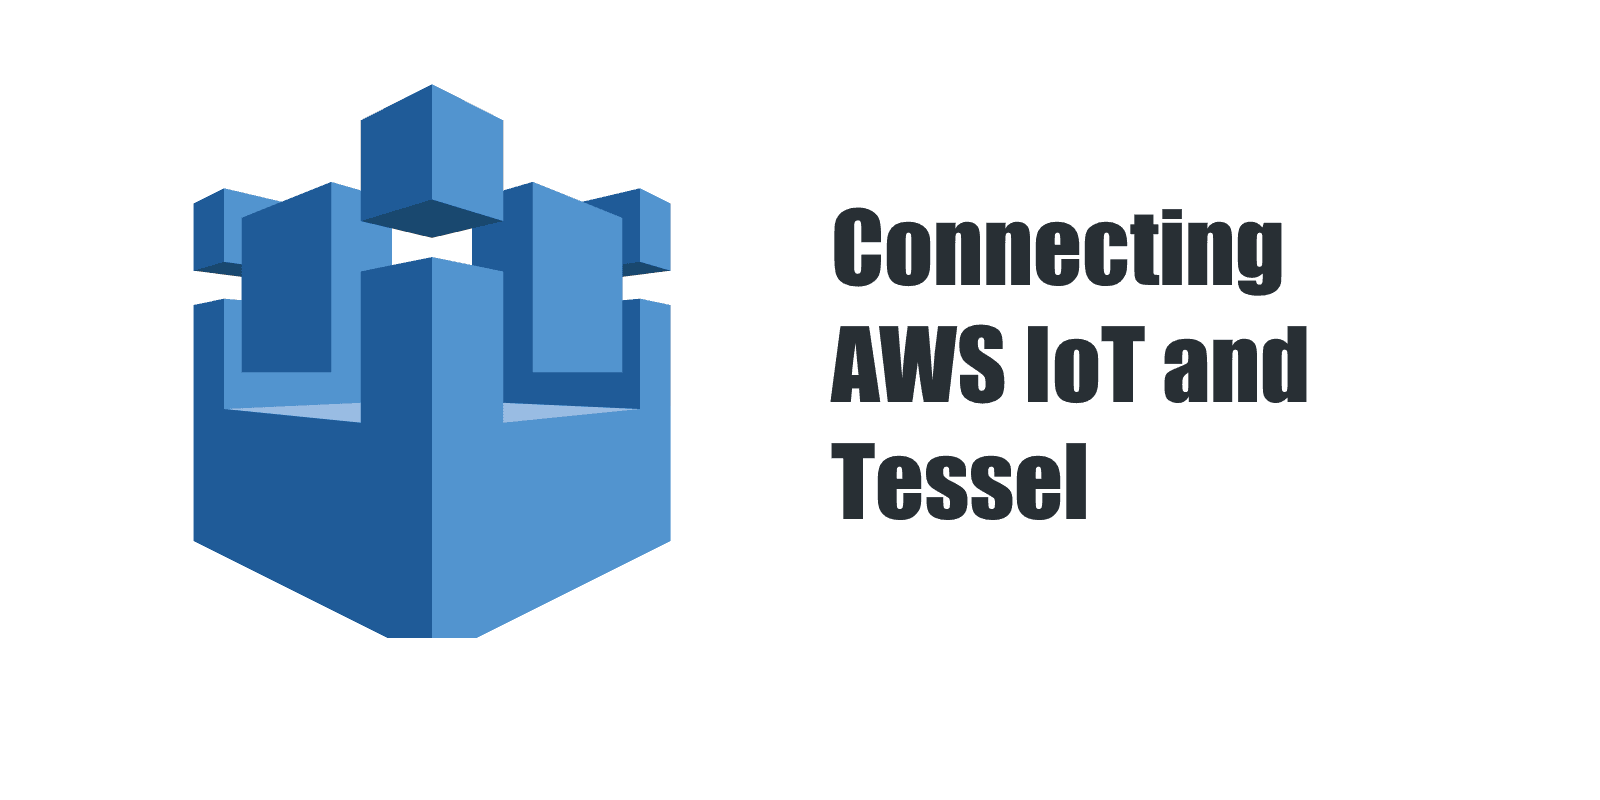 Connecting AWS IoT and Tessel